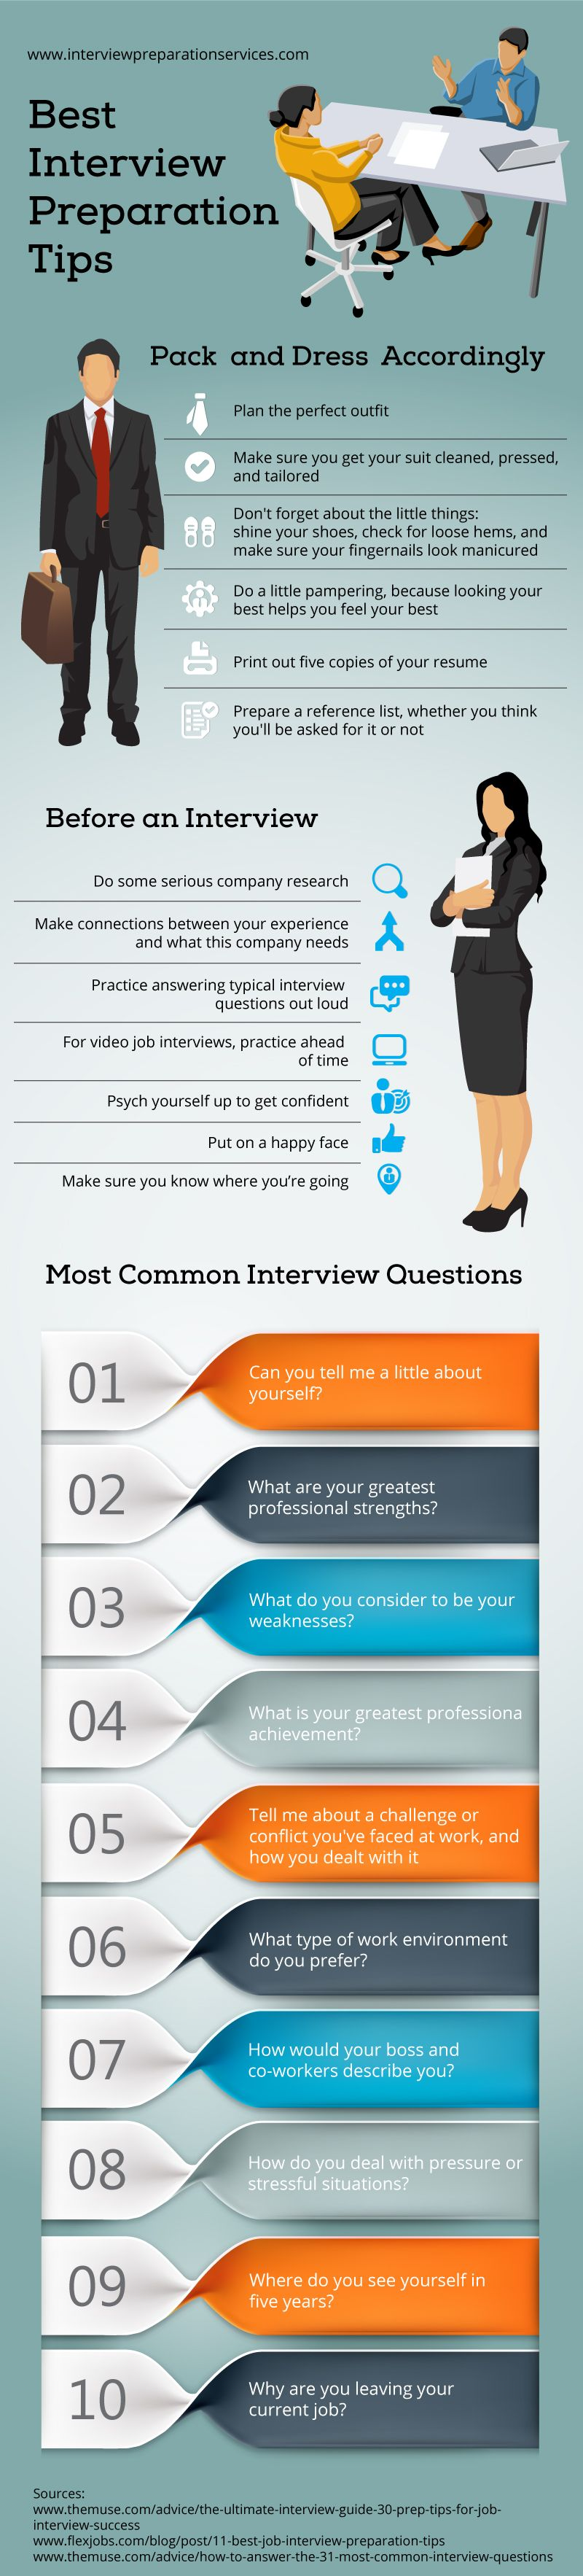 all in one place  the best job interview preparation tips